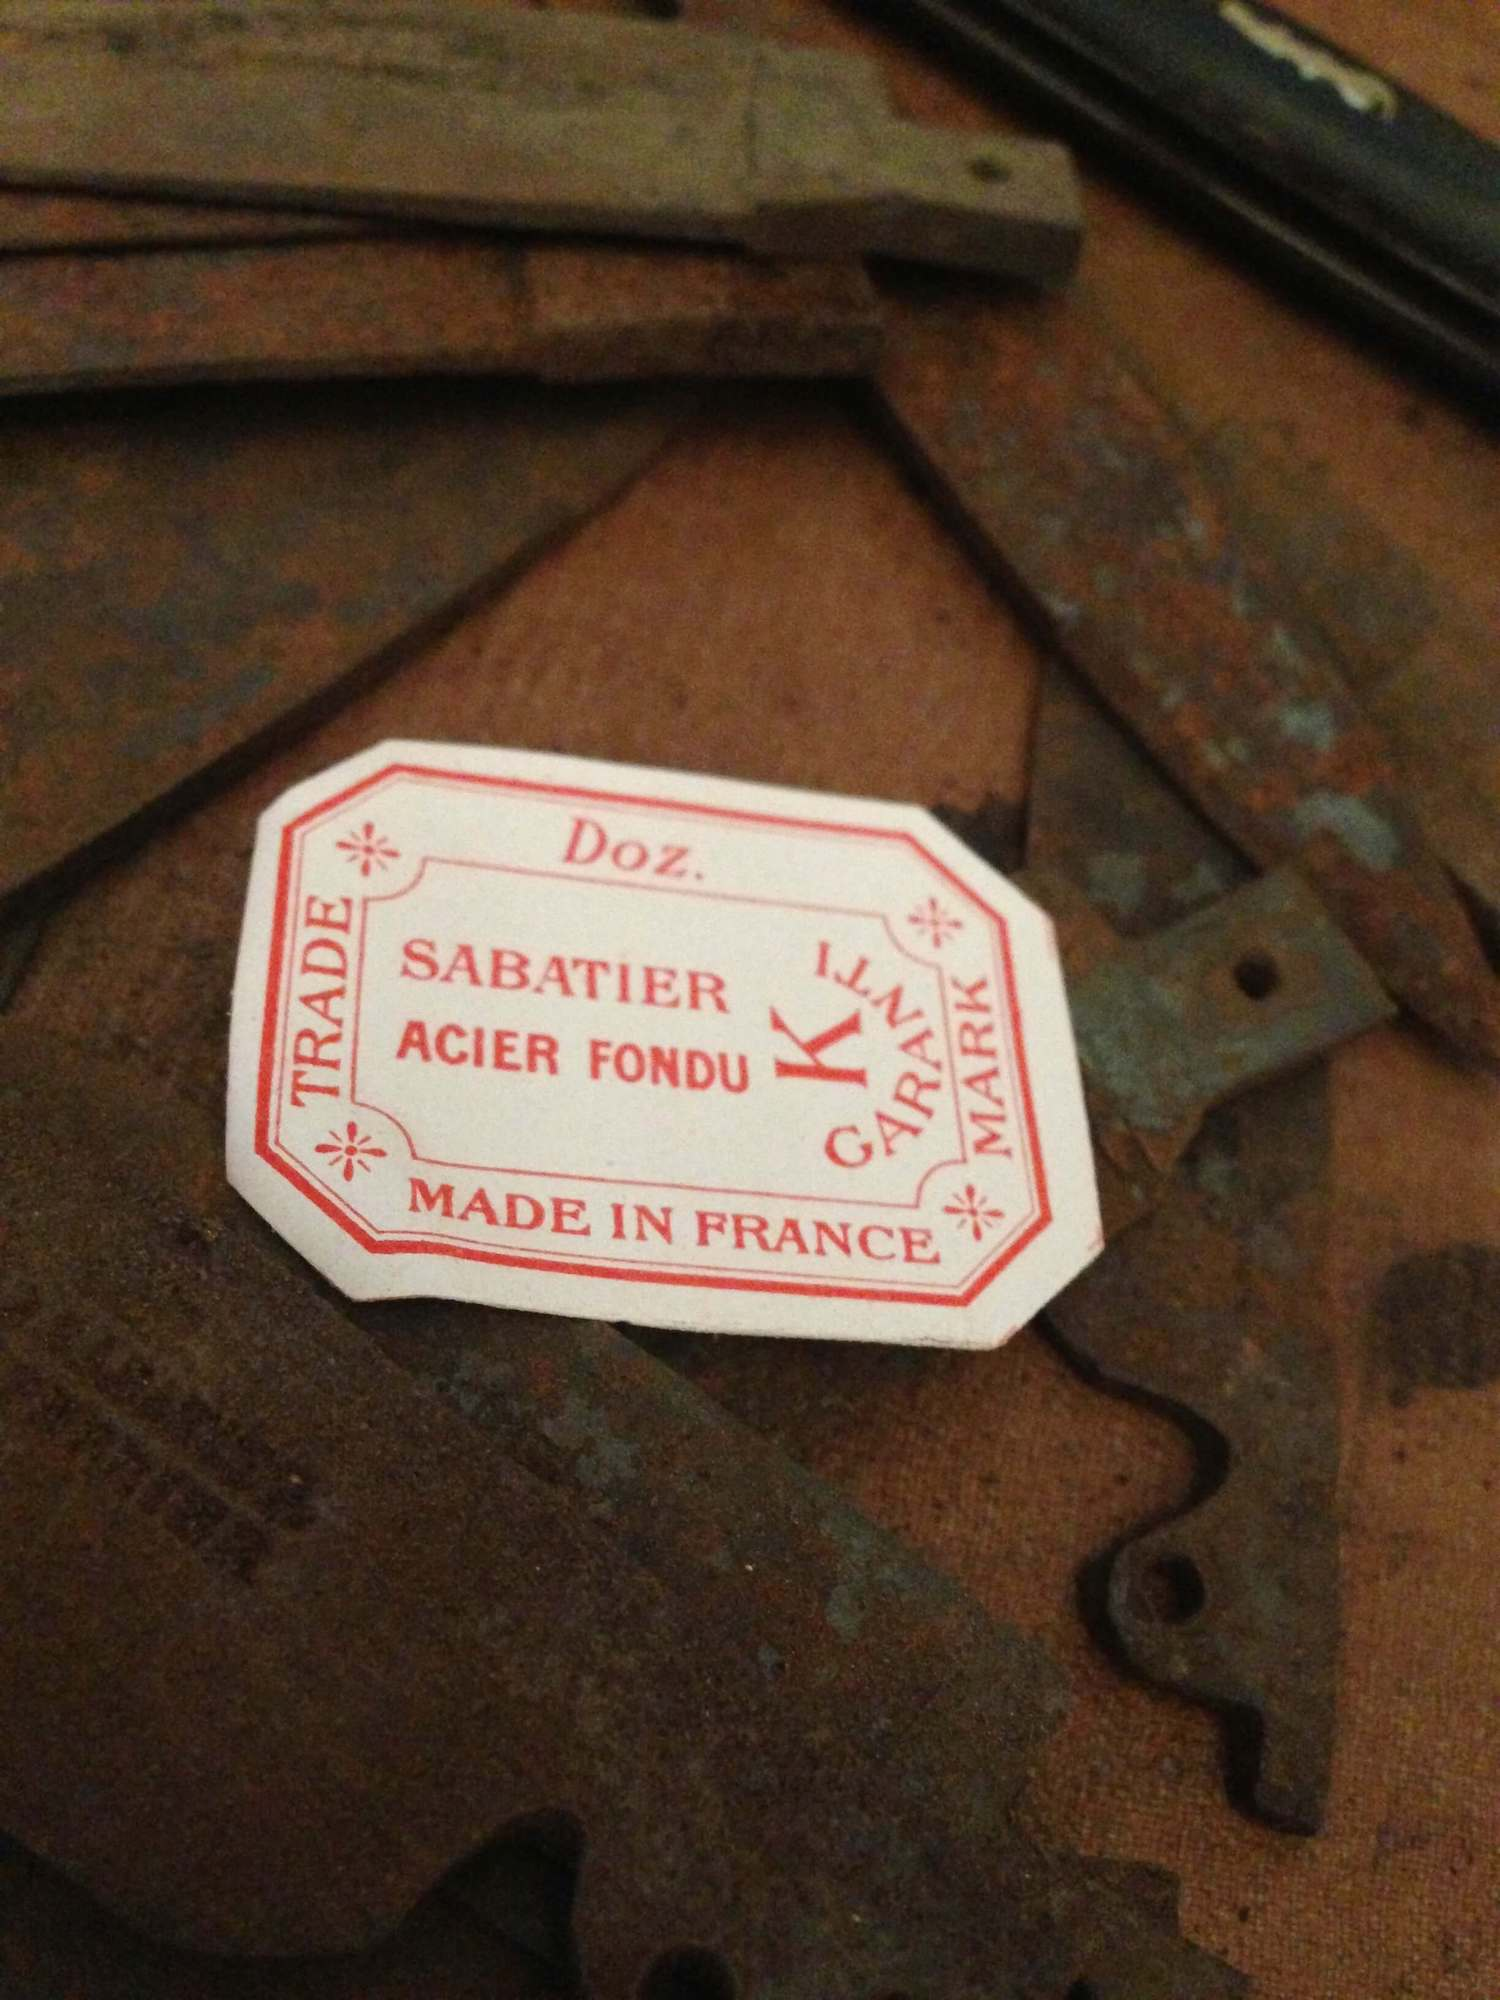 K Sabatier knife label